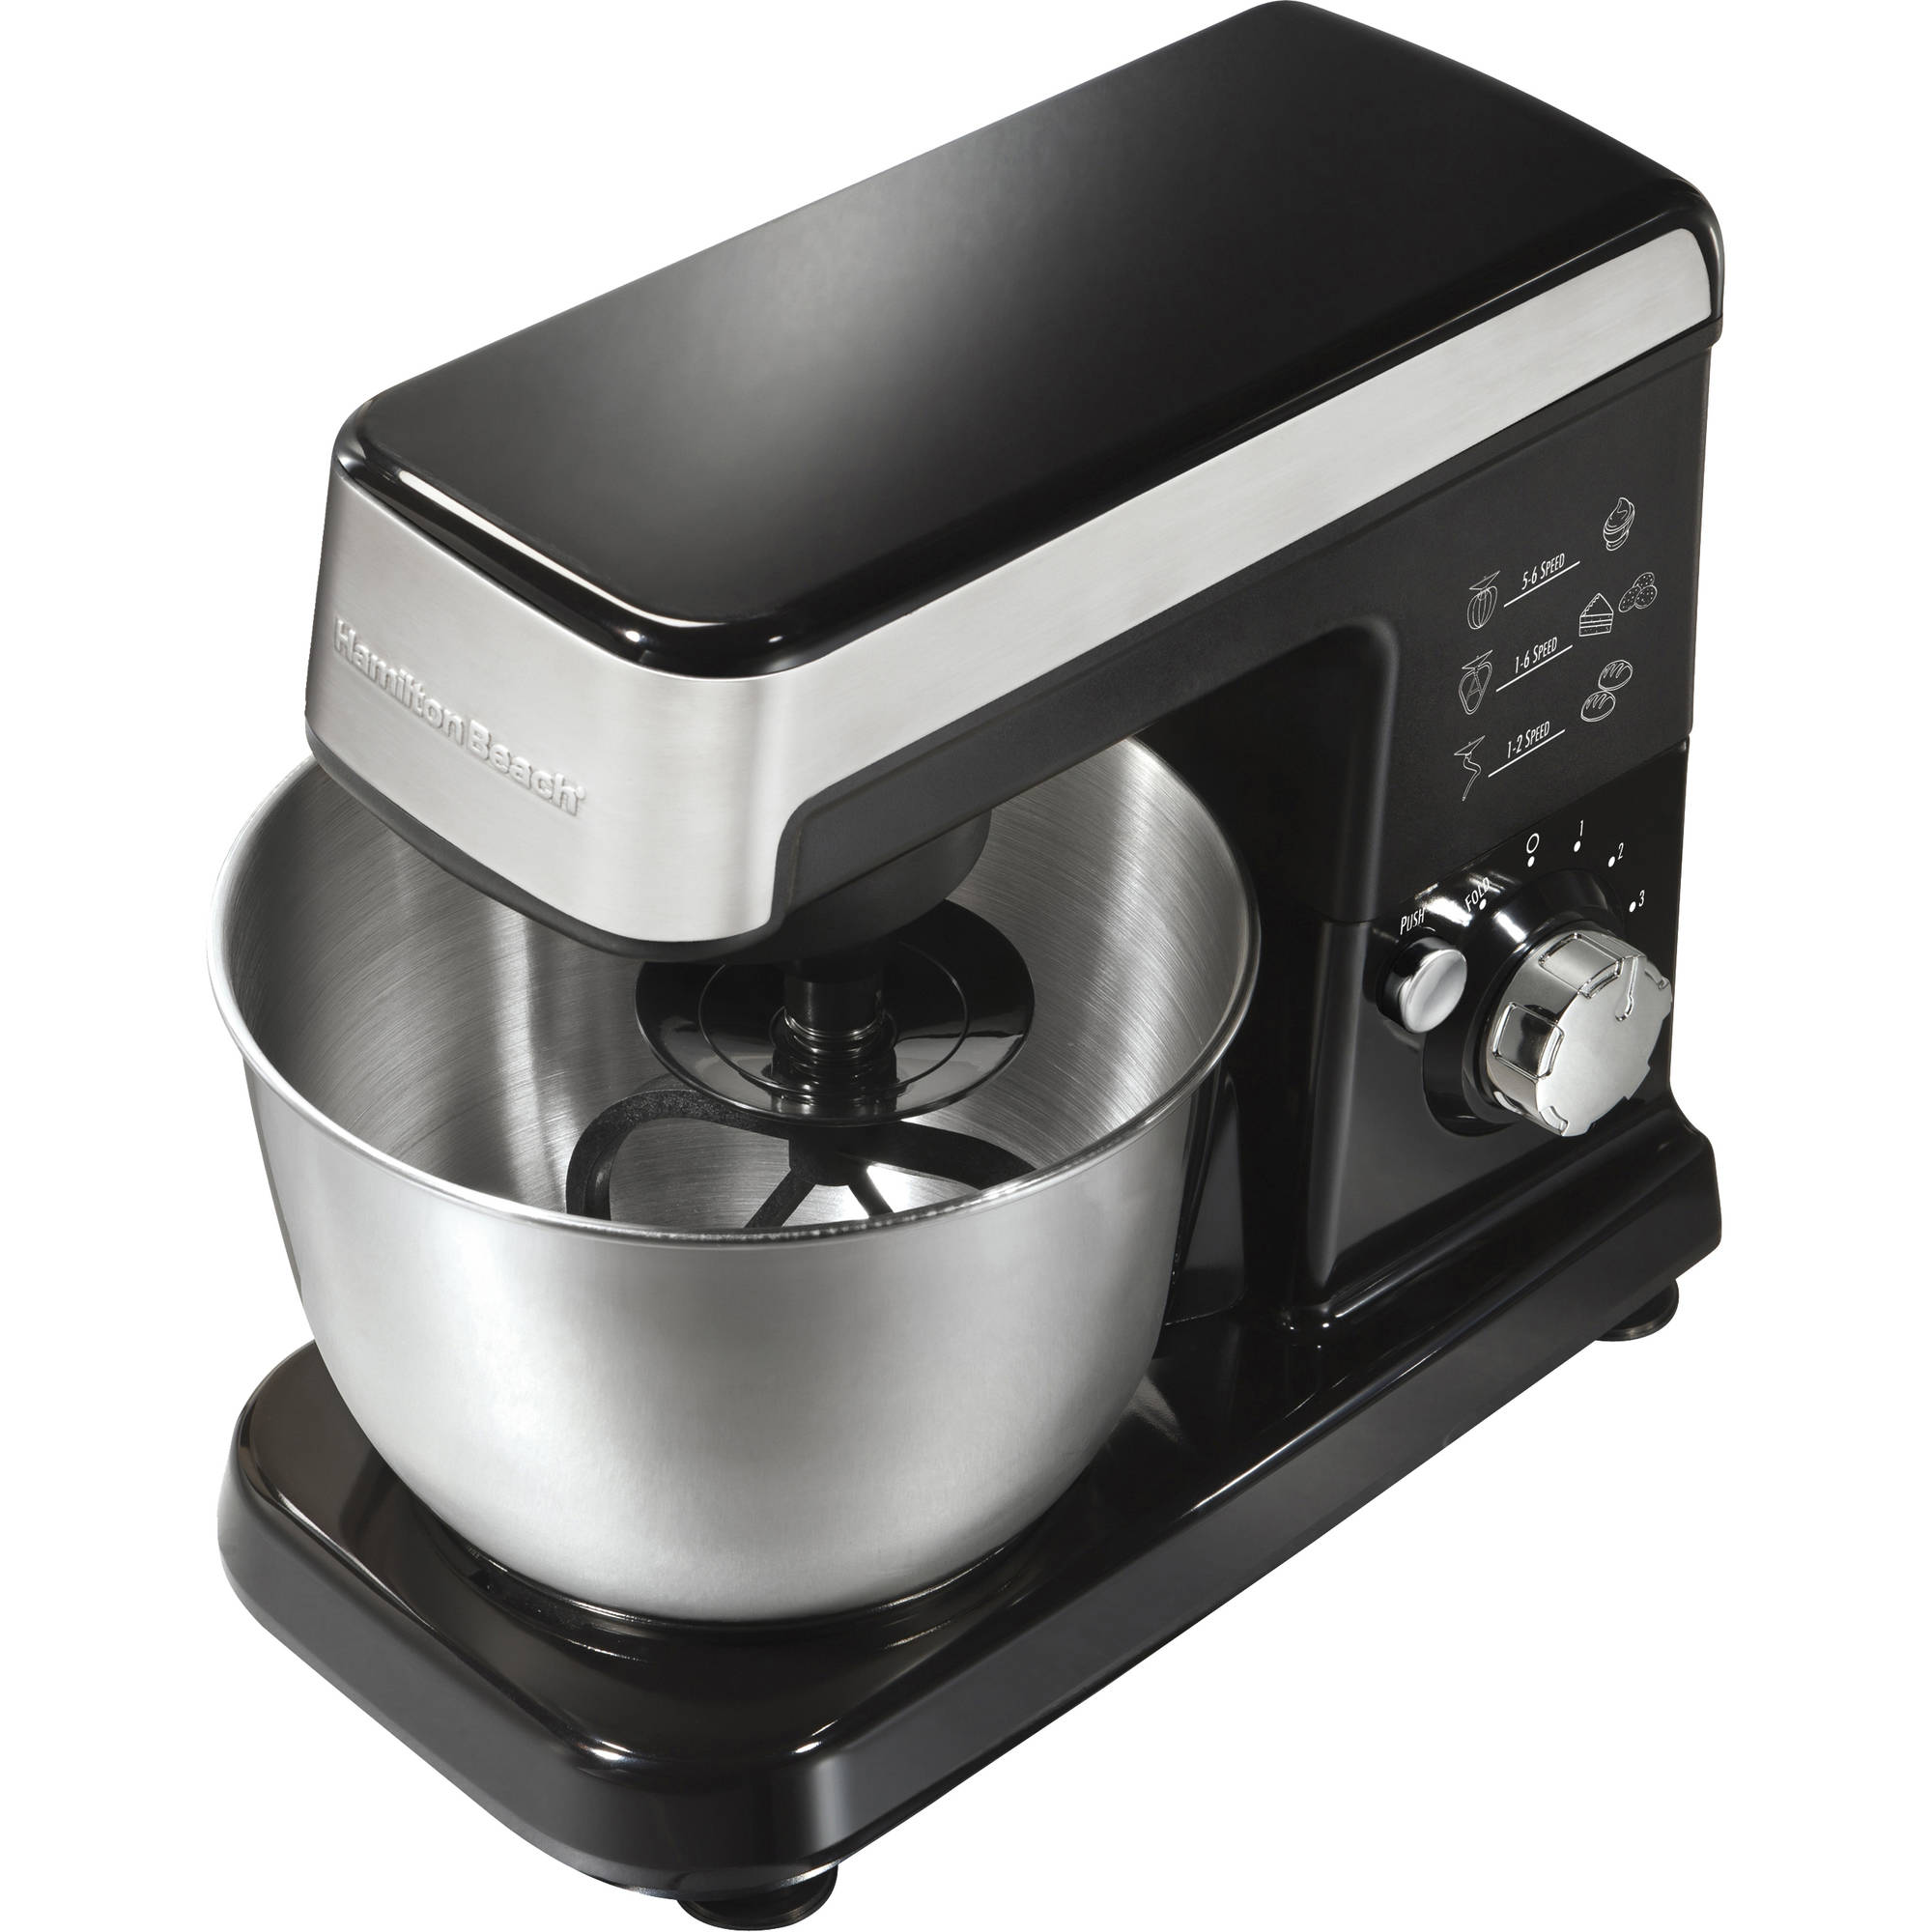 Hamilton Beach 3.5 Quart Stand Mixer with Planetary Mixing Action | Model# 63327